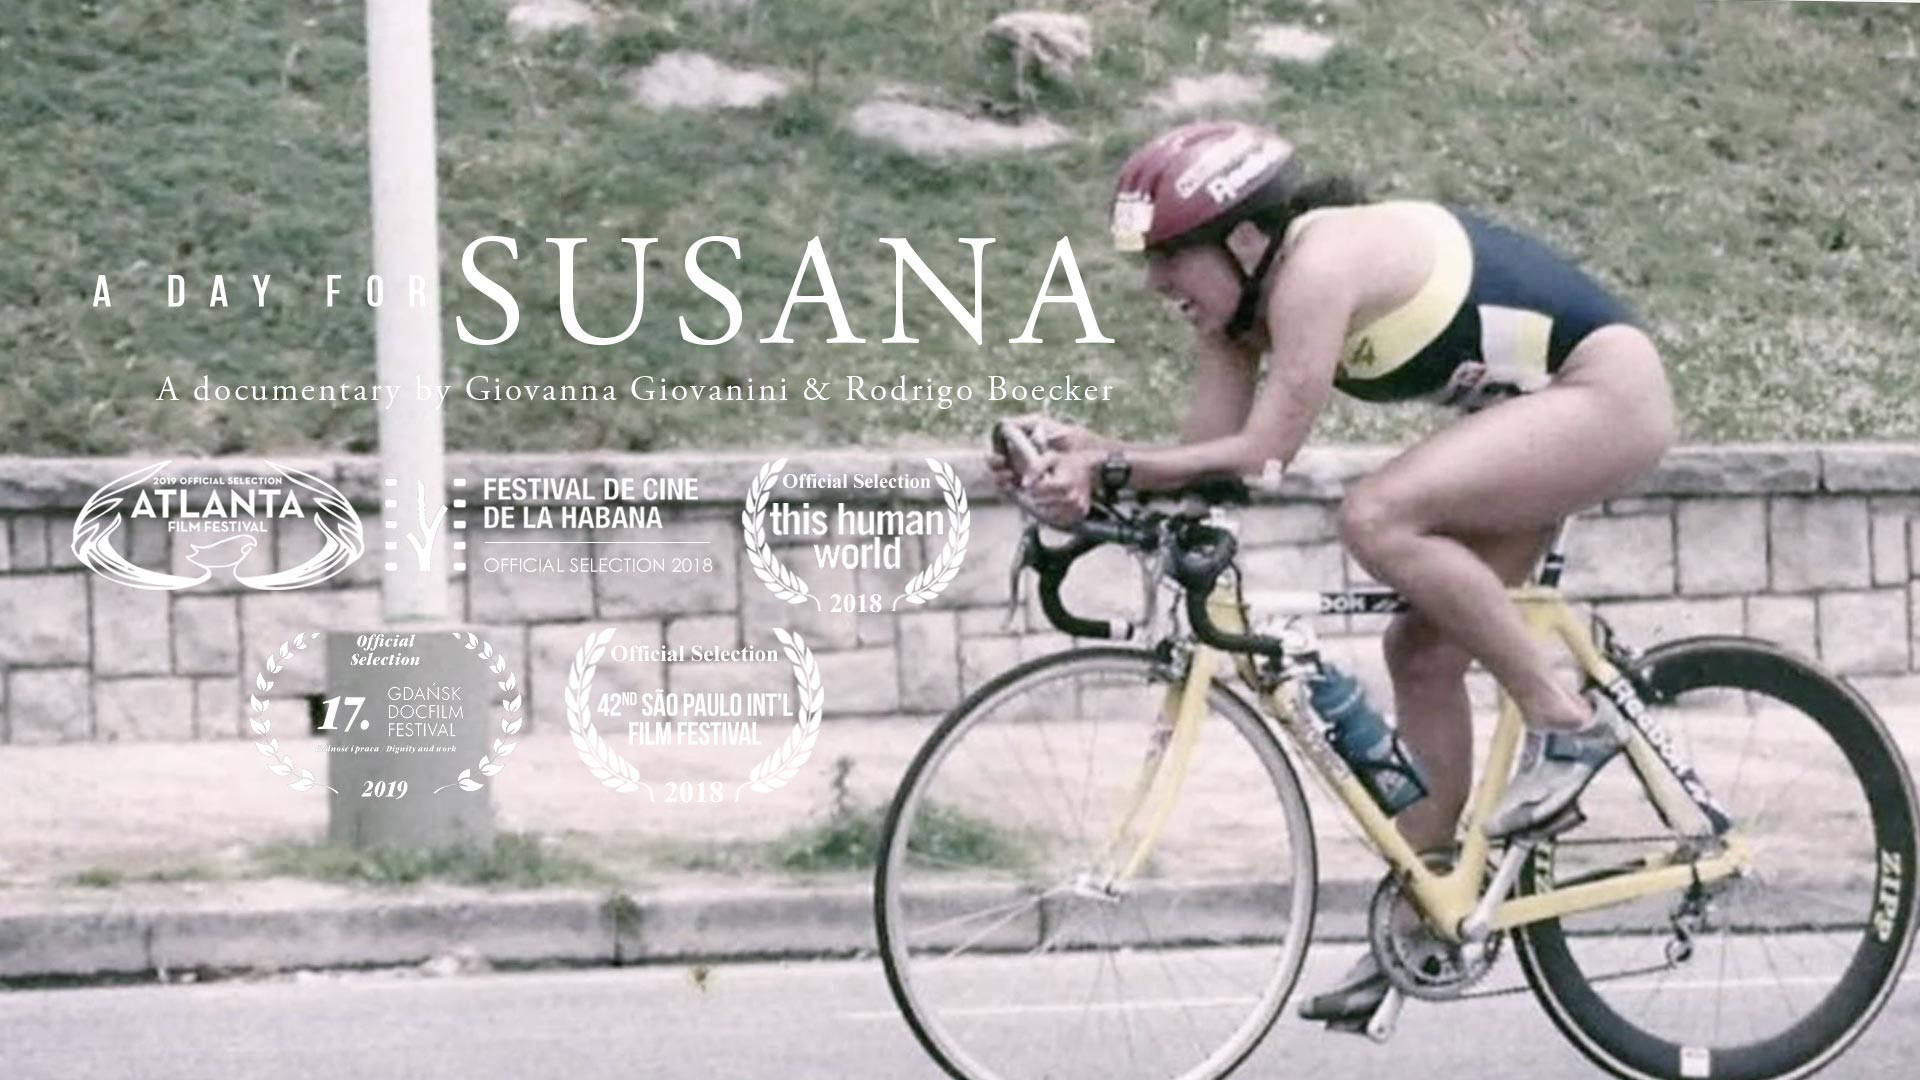 """A Day For Susana"" - Documentary, Watch the Fiilm"